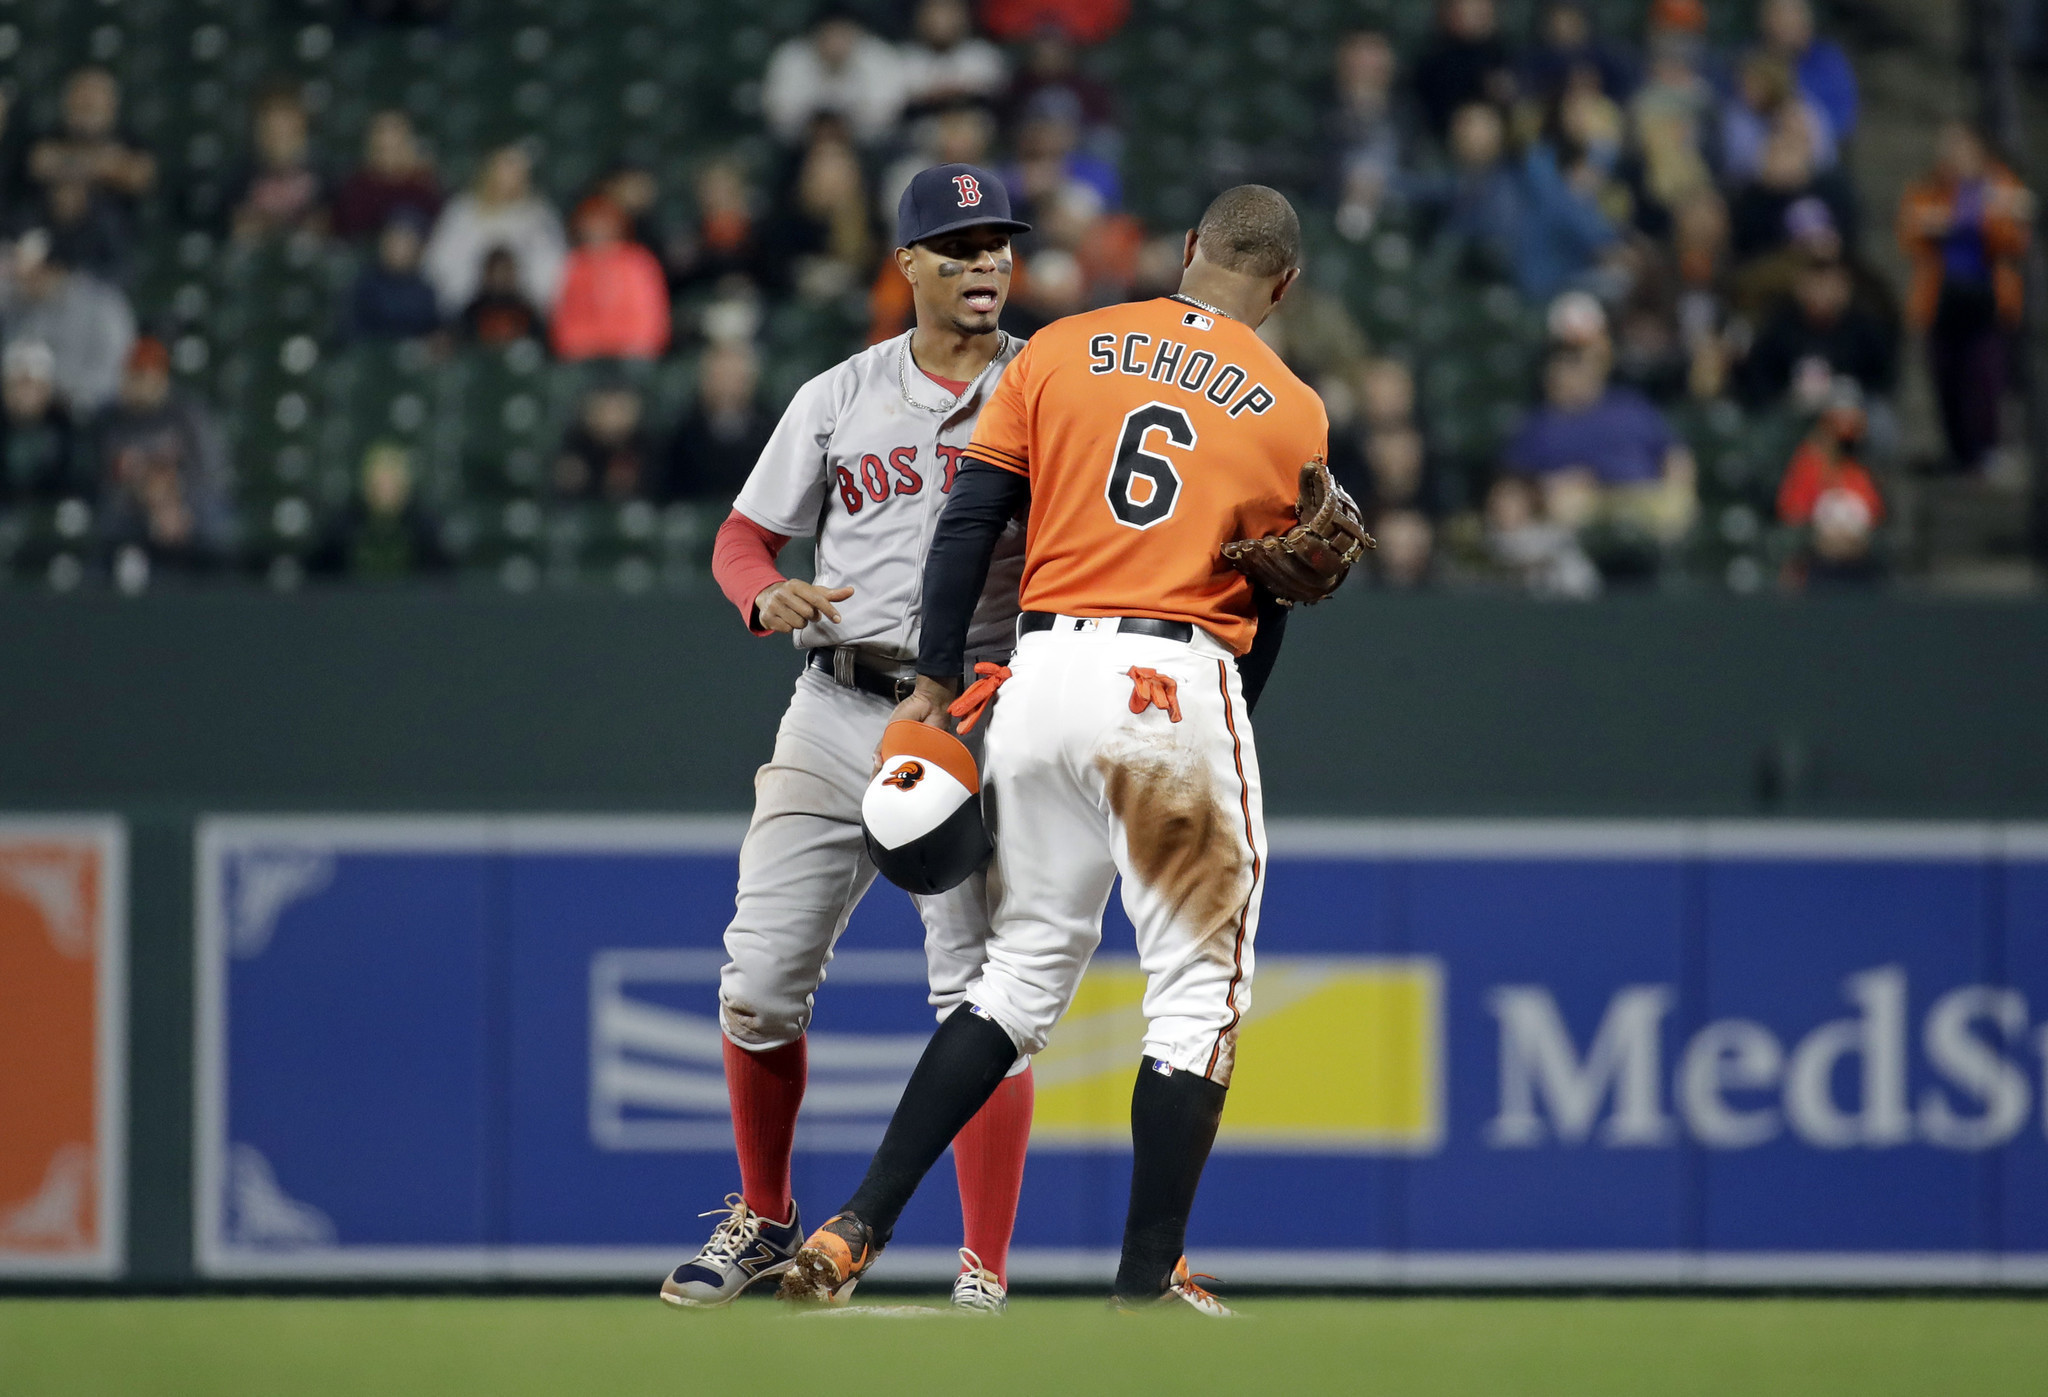 Bal-orioles-on-deck-what-to-watch-sunday-vs-red-sox-20170422